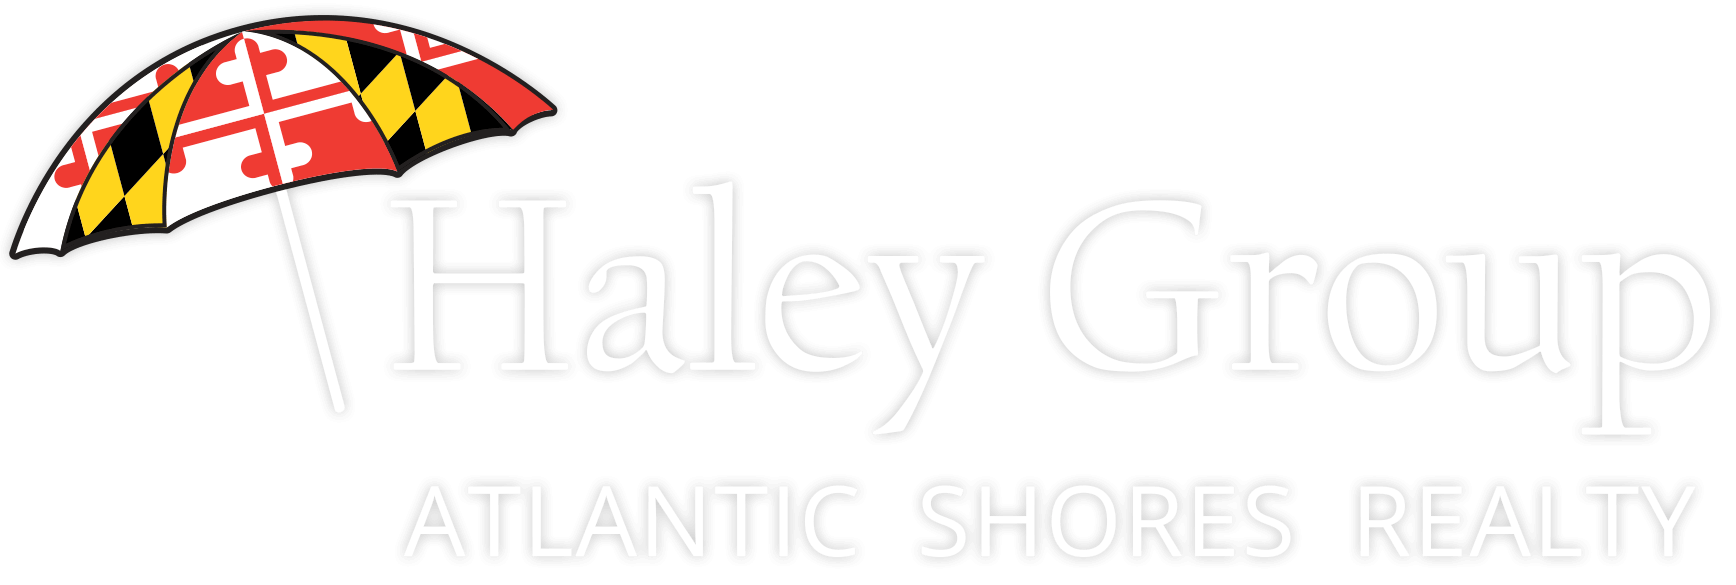 The Haley Group - Atlantic Shores Realty